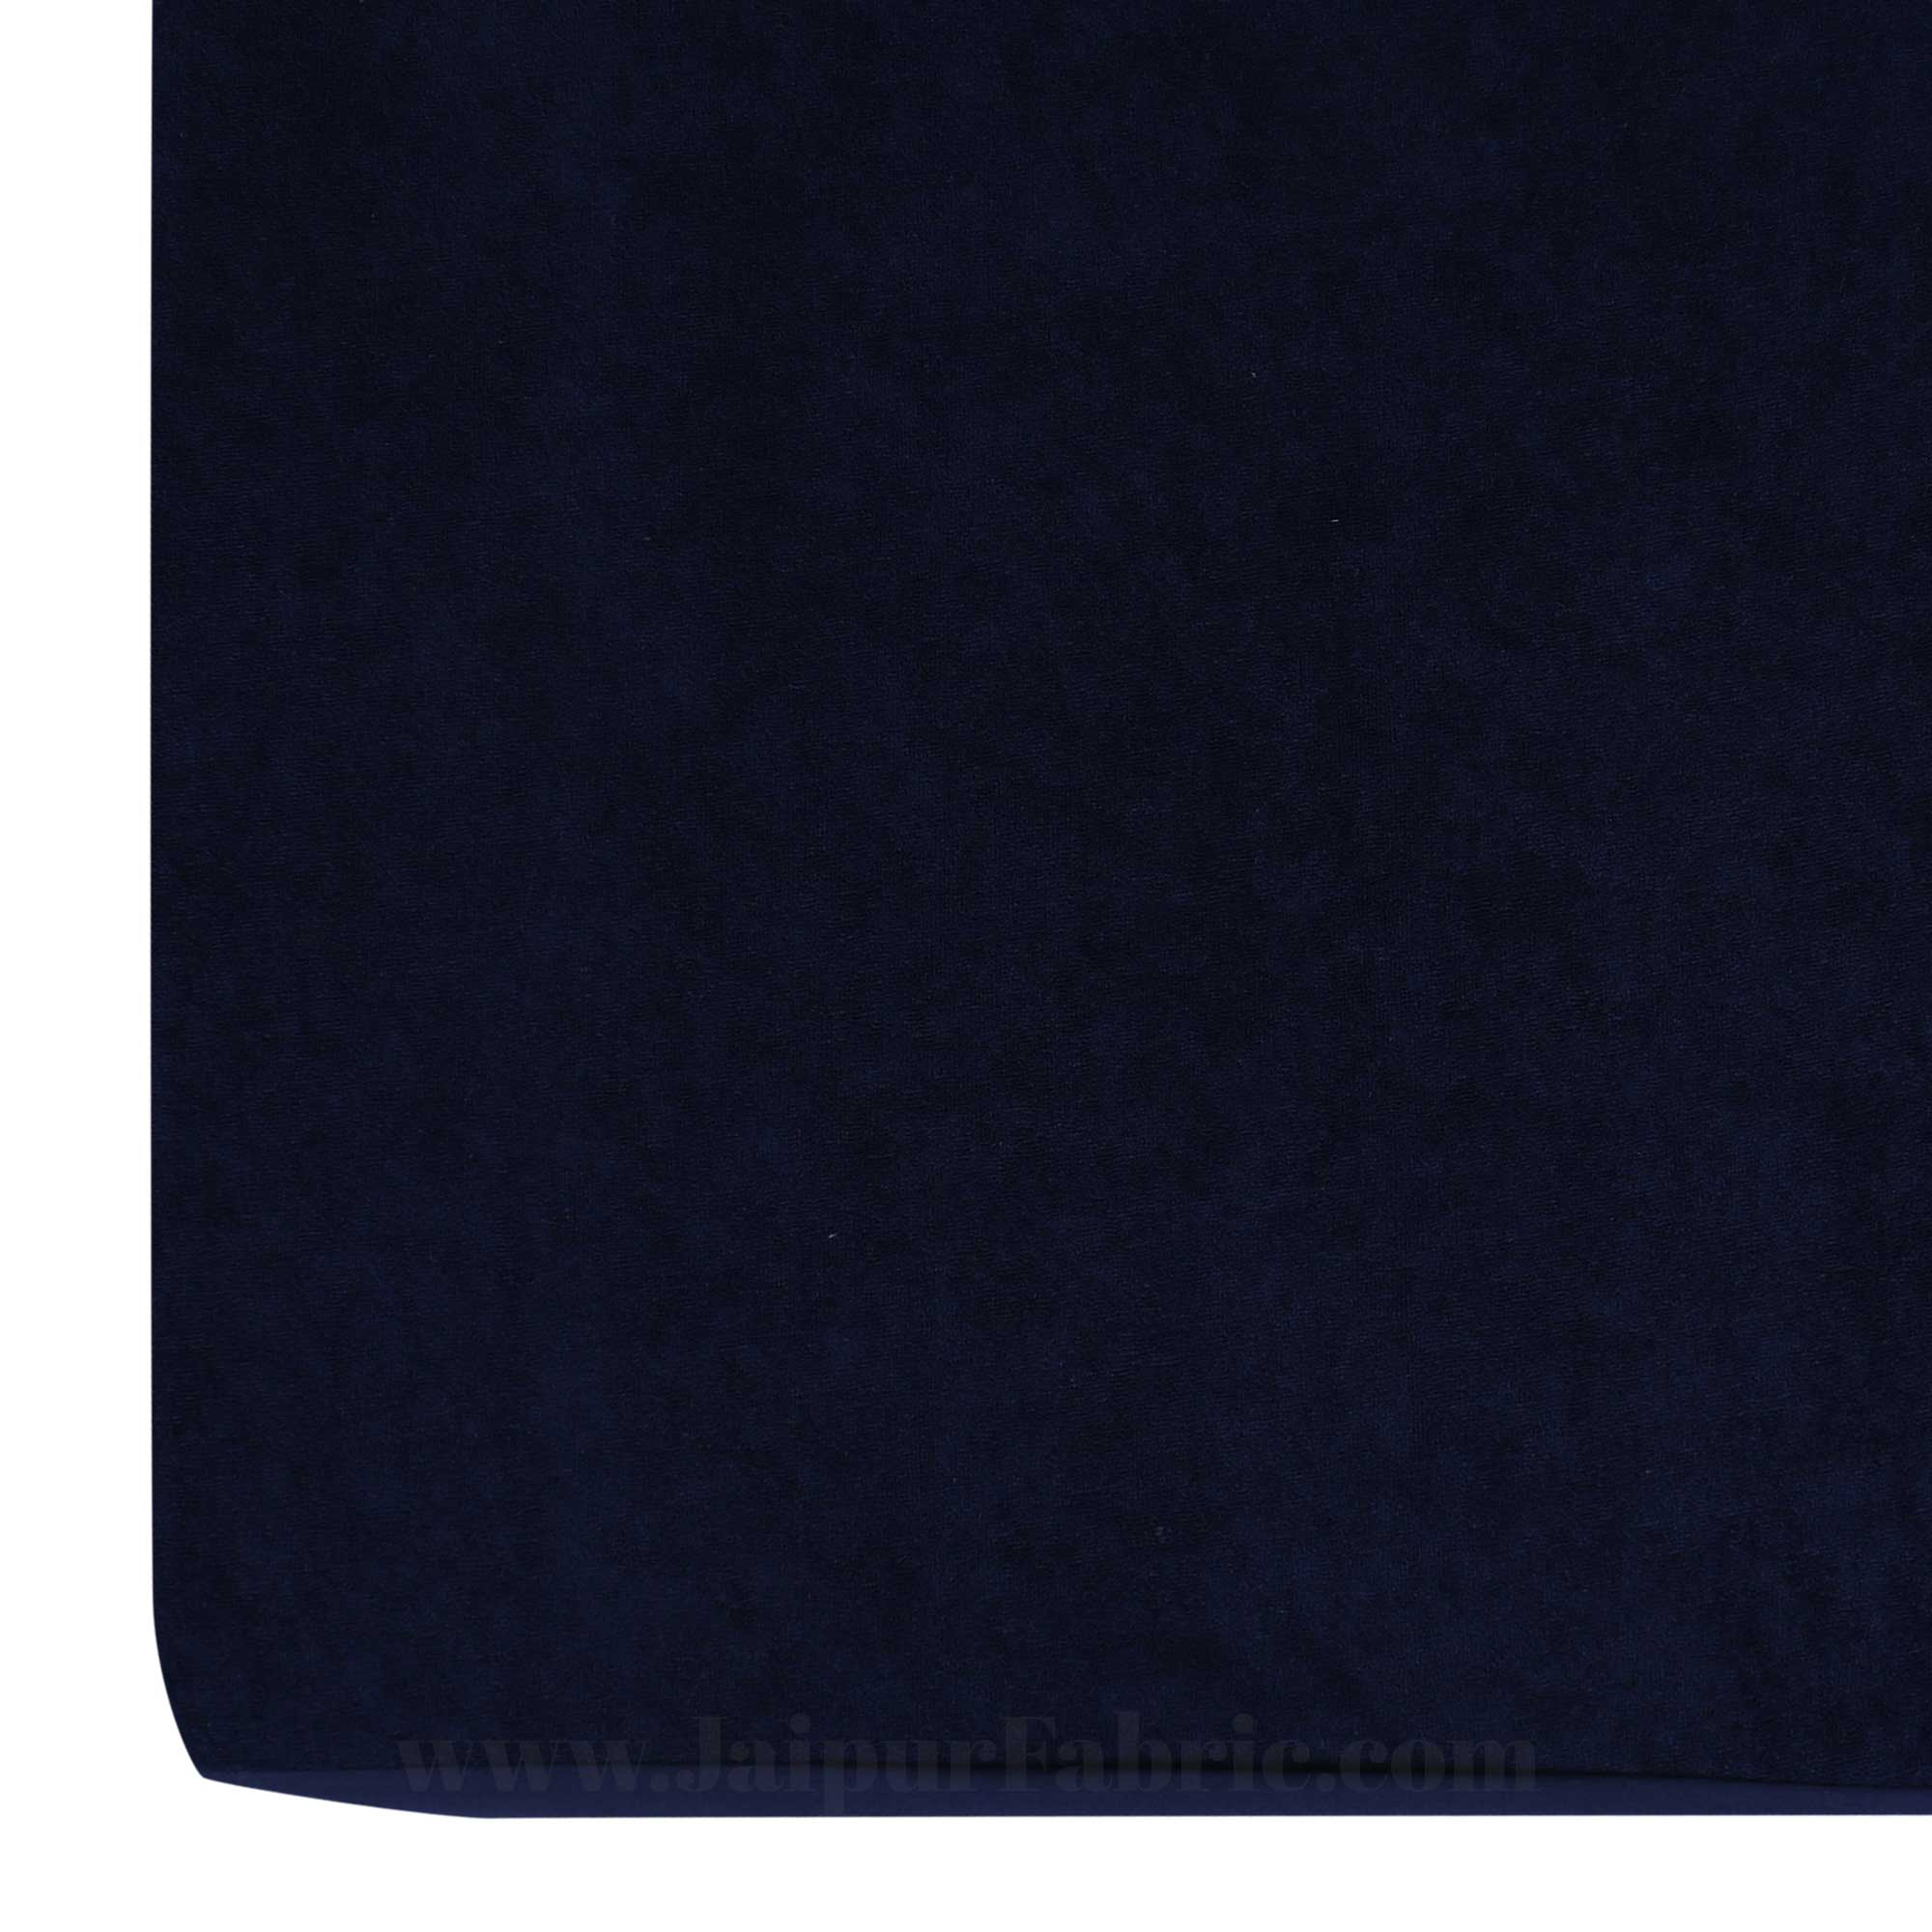 Heavy Quality Navy Blue Terry Cotton Waterproof and Elastic Fitted Through Out Double Mattress Protector